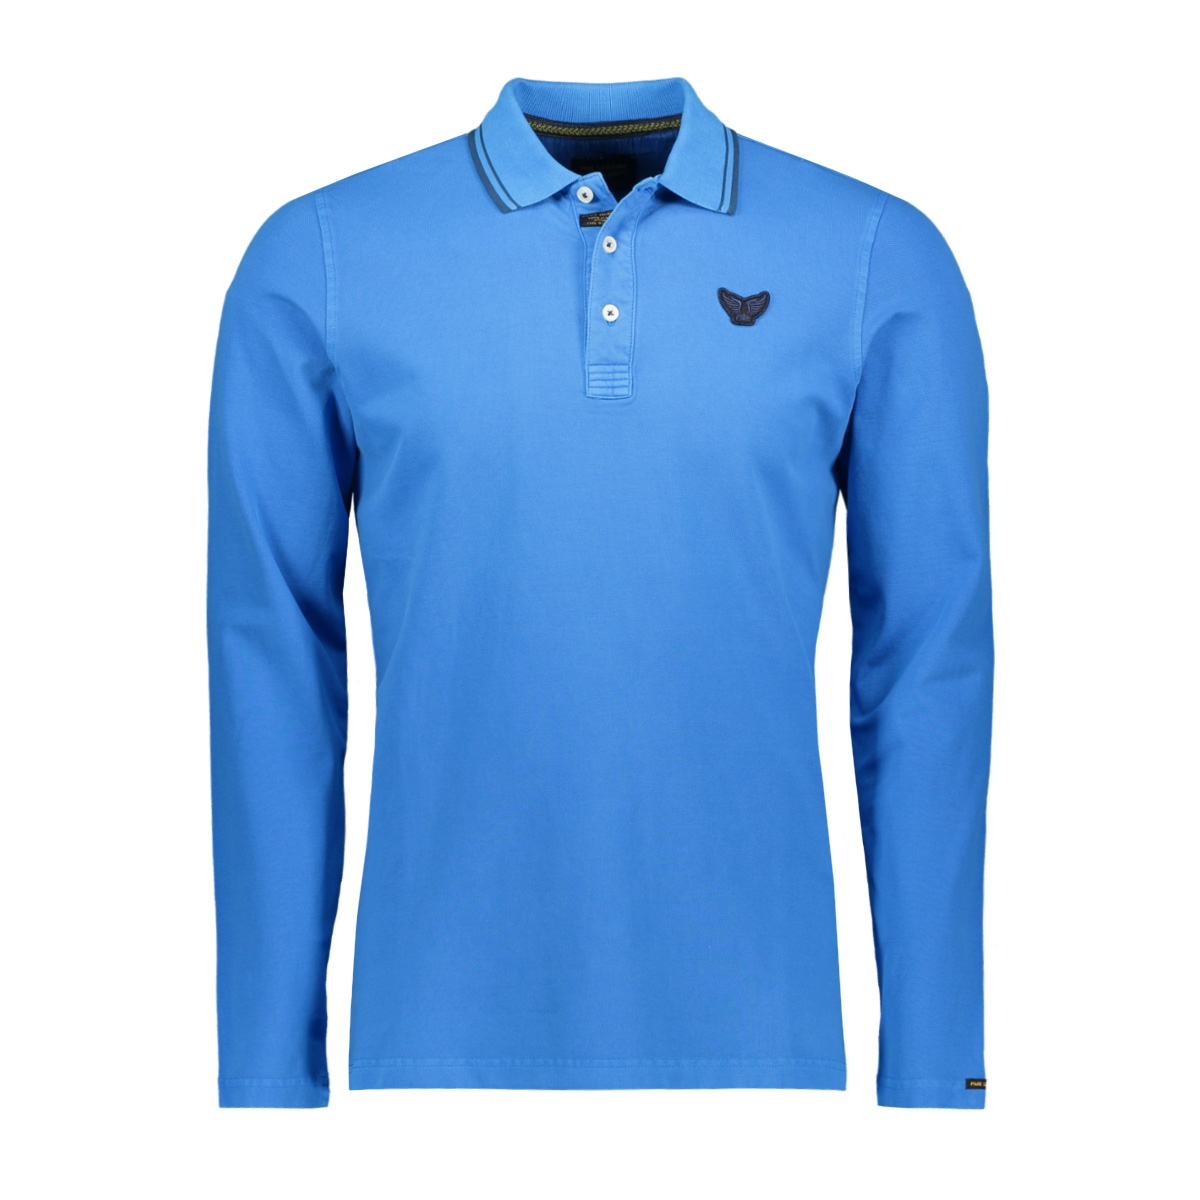 long sleeve polo pps196880 pme legend polo 5182